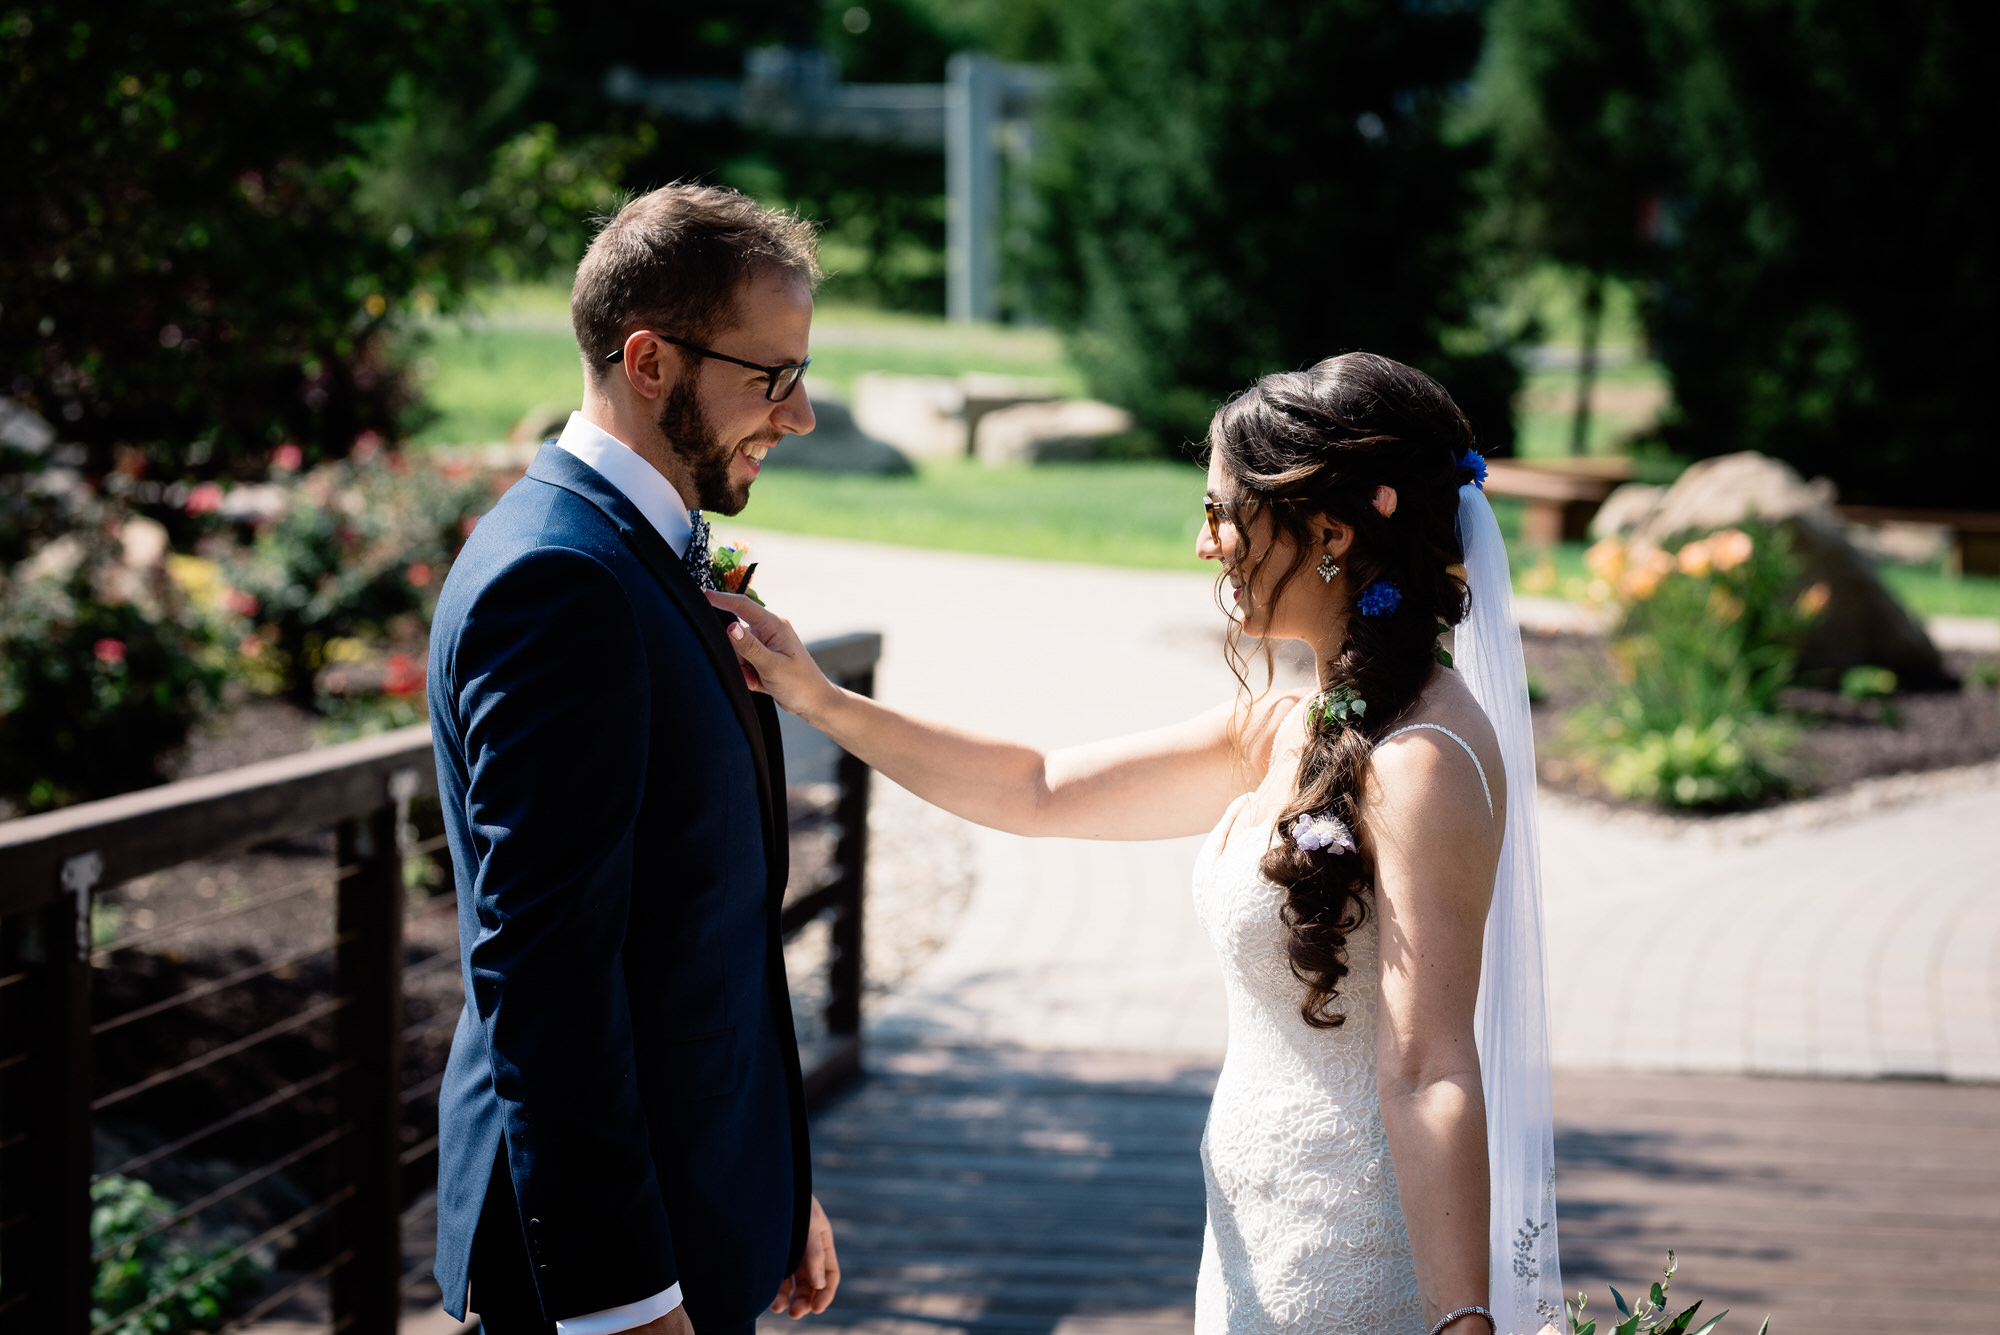 Bear_Creek_Mountain_Wedding_031.jpg